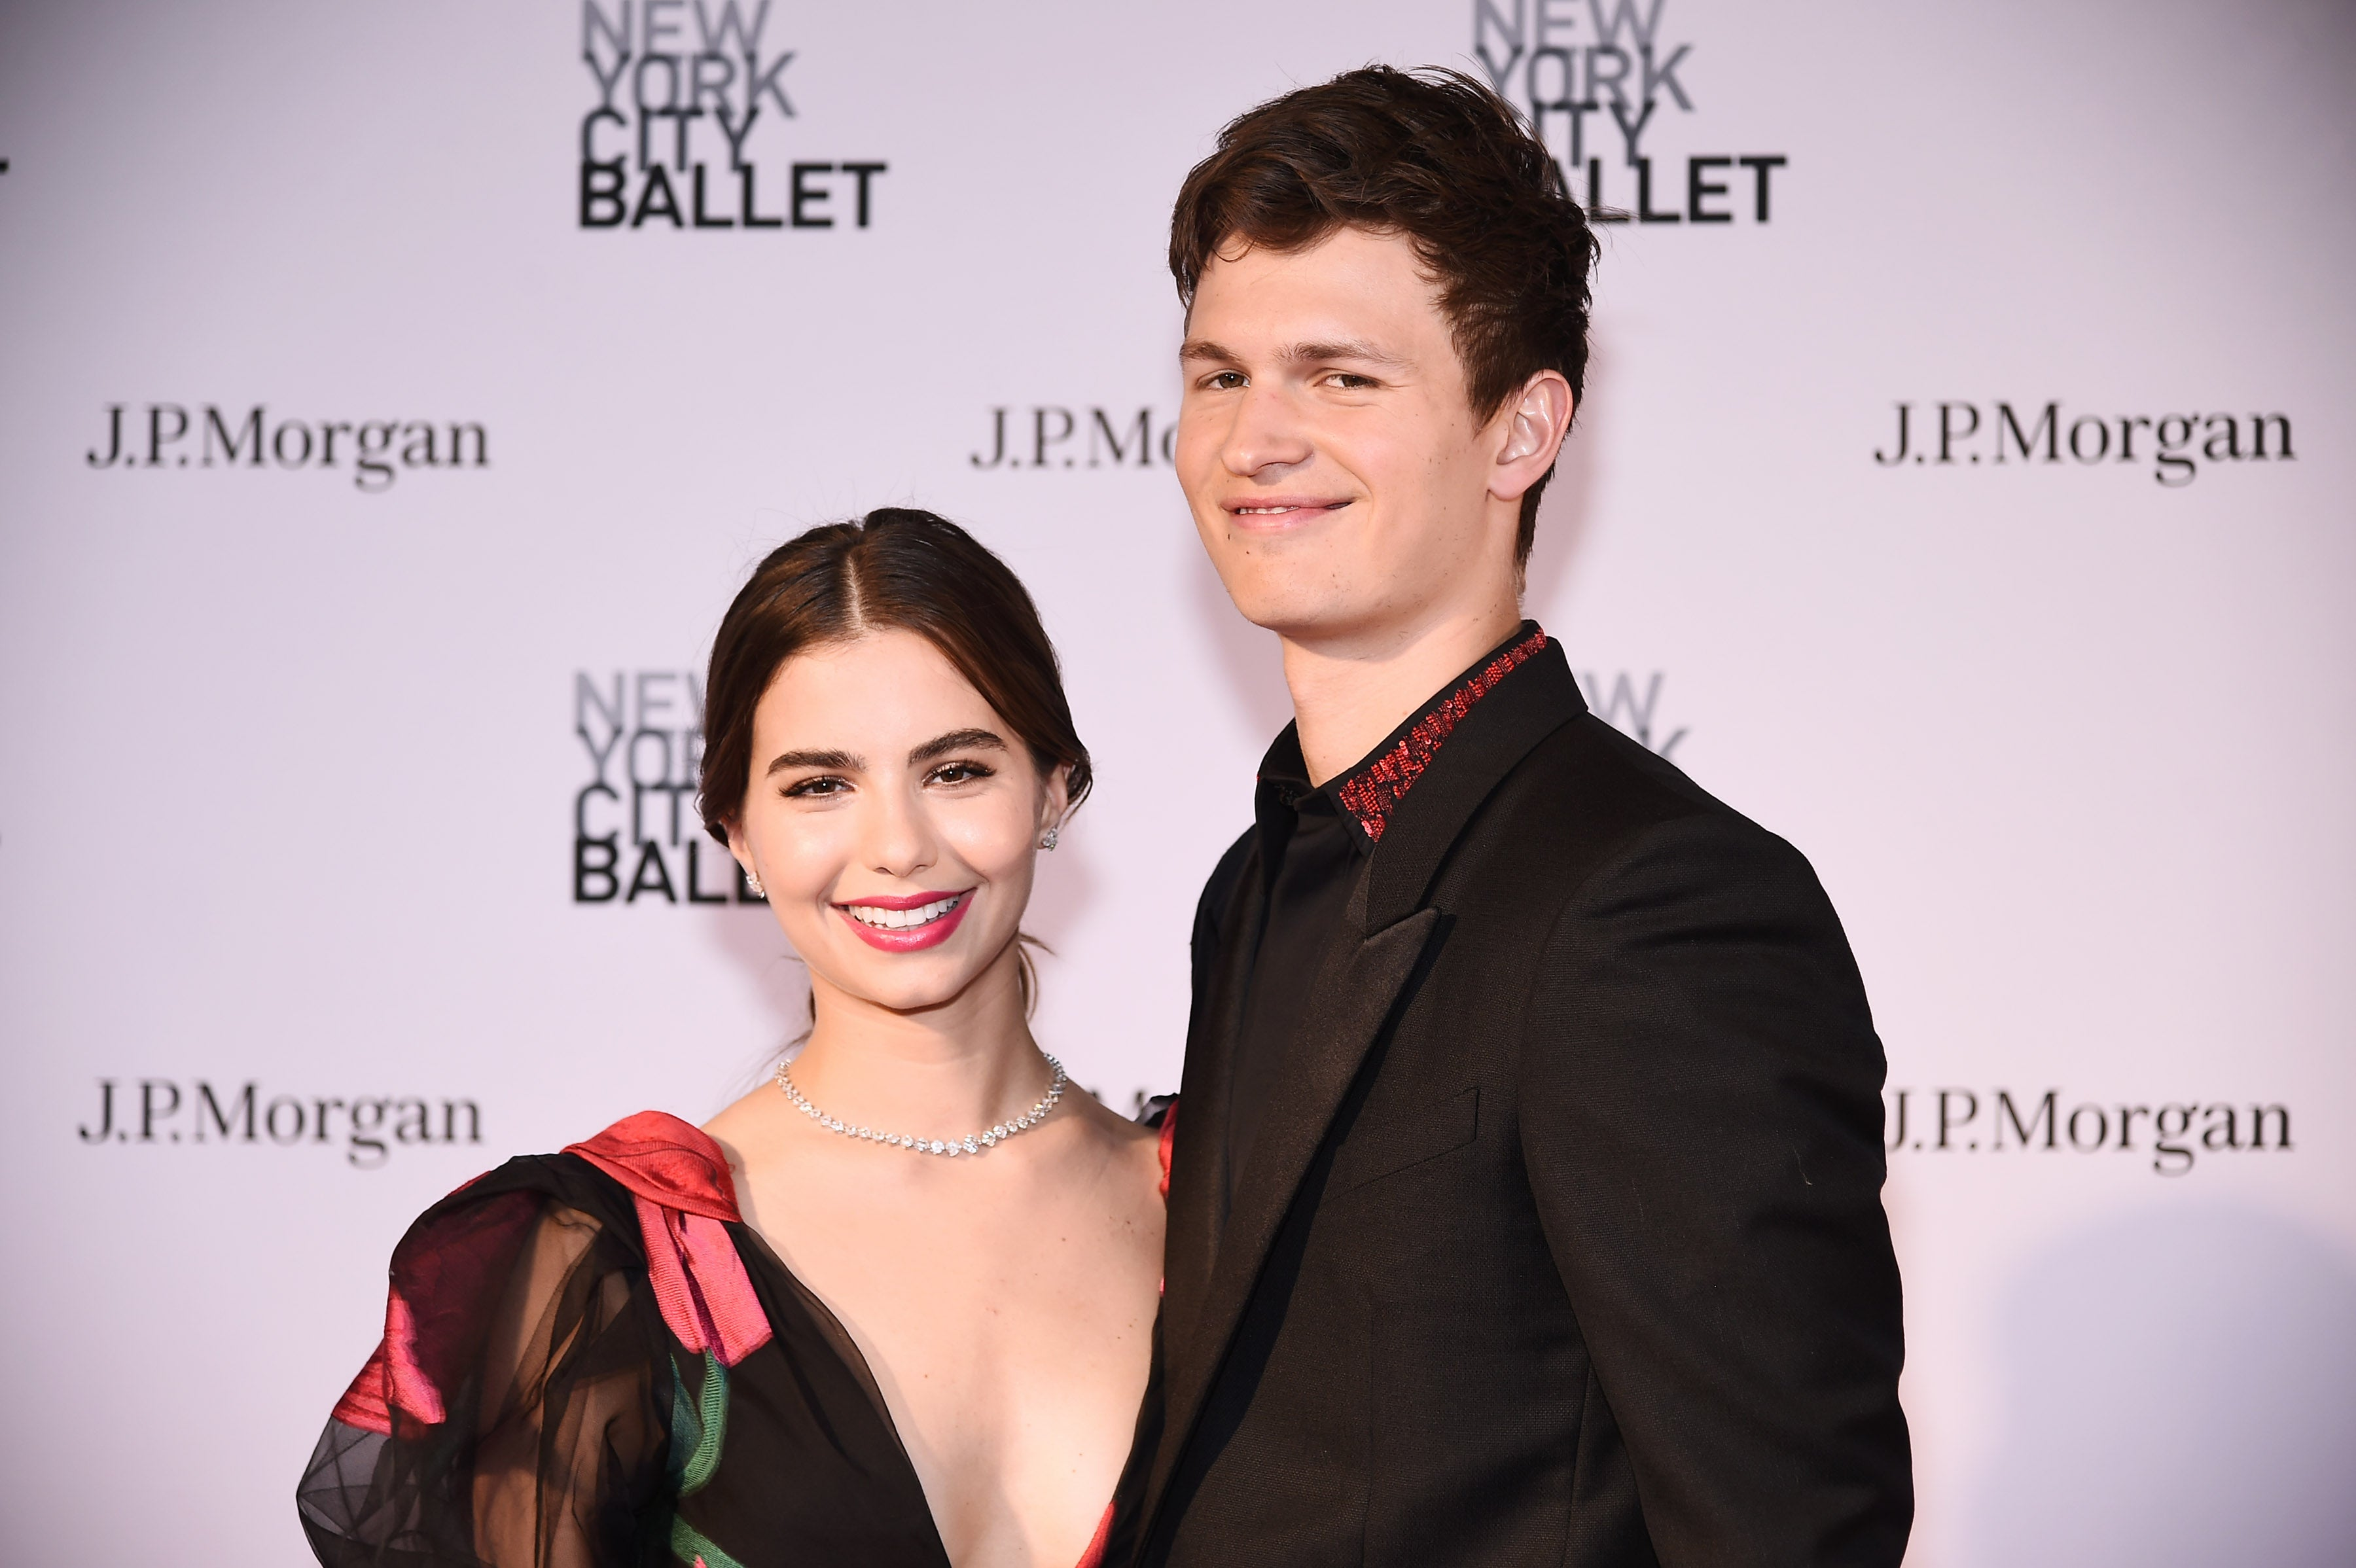 Ansel Elgort Says He Wants to 'Feel Free to Fall in Love' Amid Years-Long Relationship With Violetta Komyshan